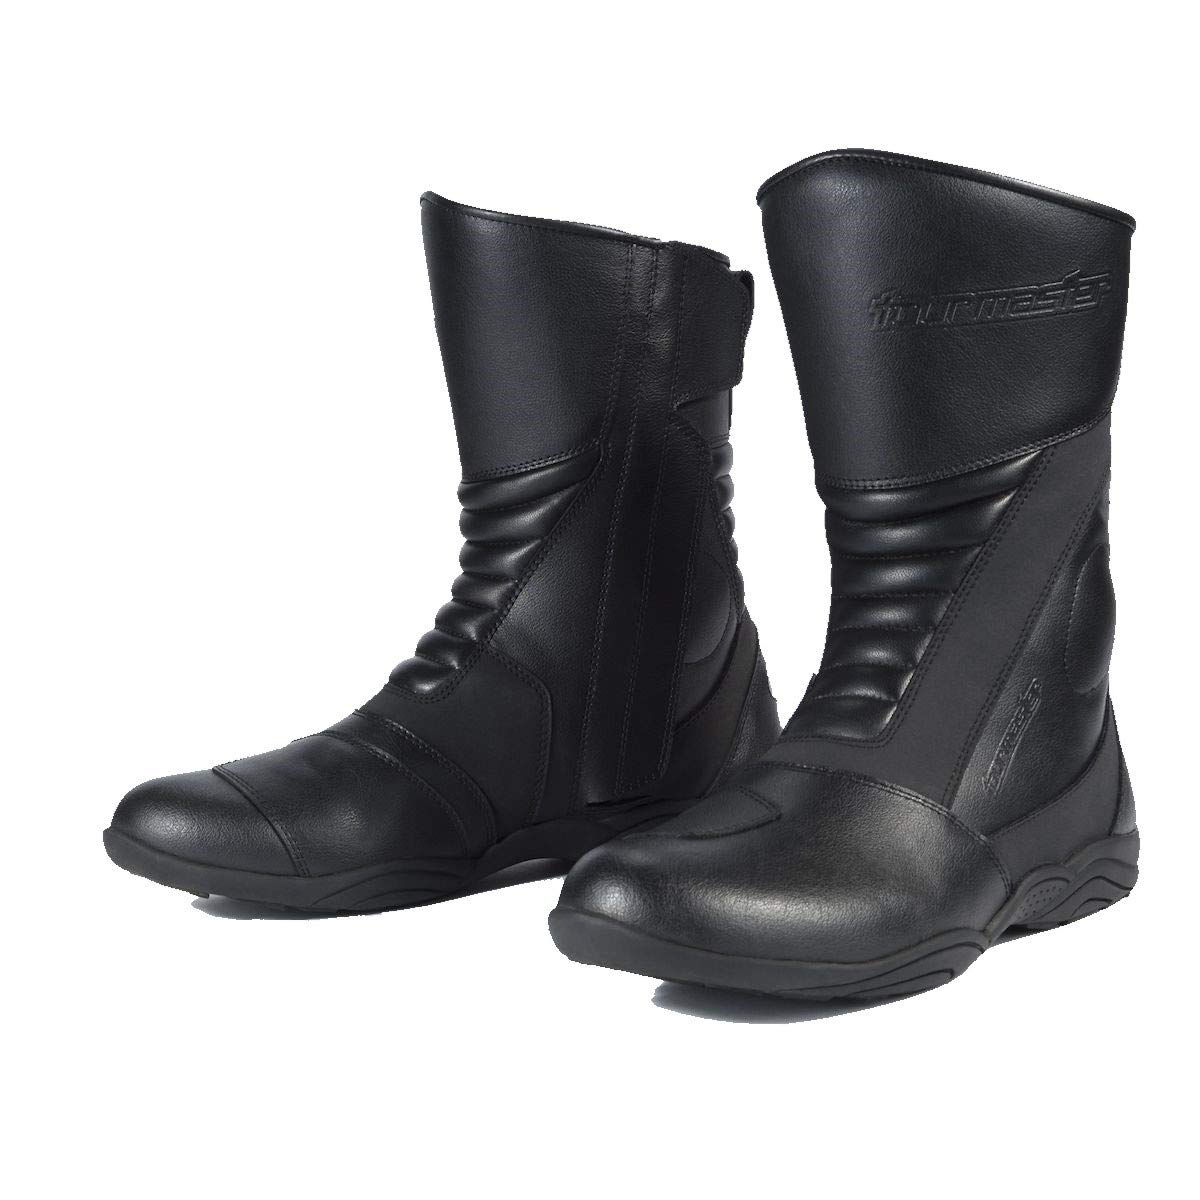 TourMaster Solution 2.0 Cold-Weather WP Road Boots Black, 12.5W